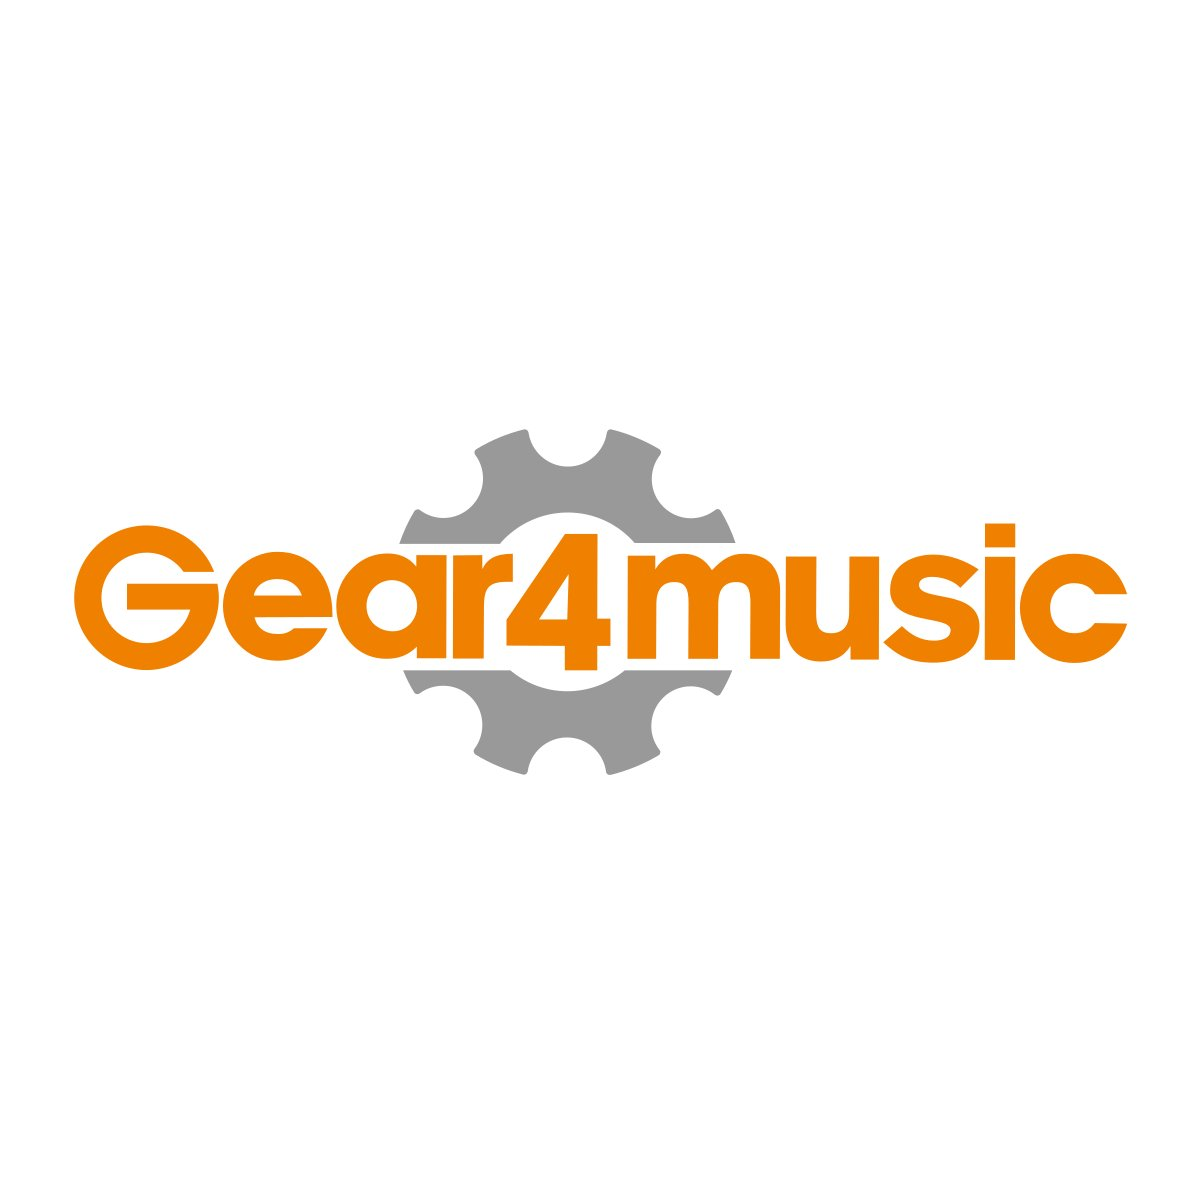 Coppergate profesionalni kornet od Gear4music